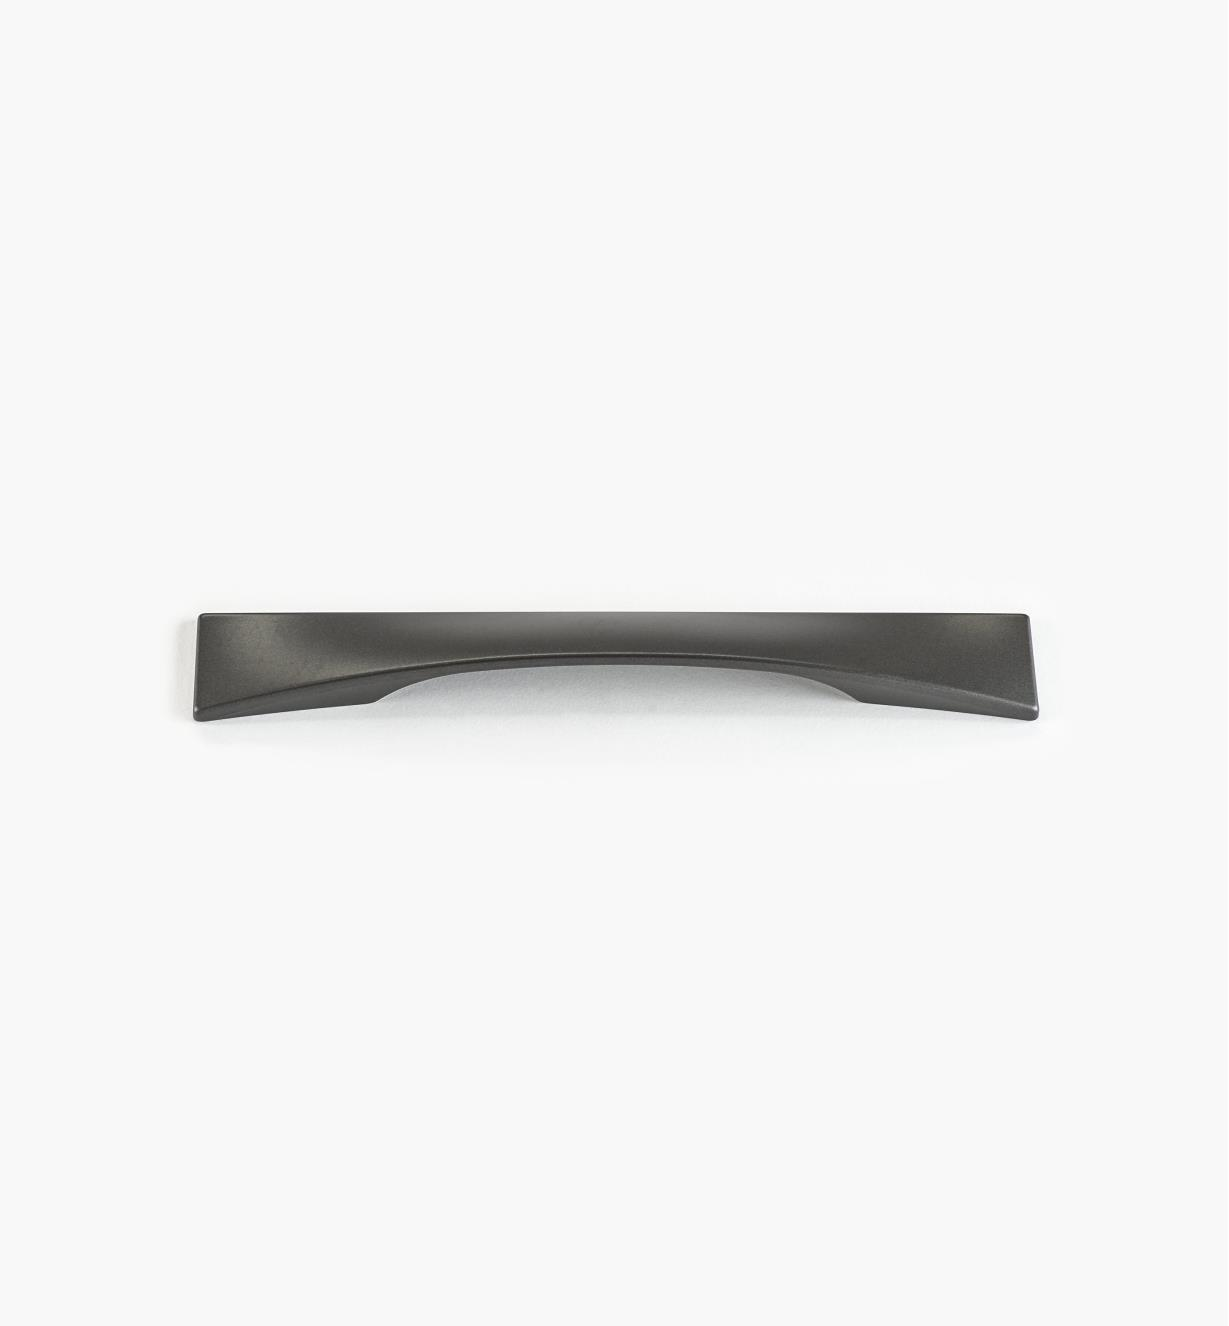 00A7450 - Musa 128mm (210mm) Graphite Handle